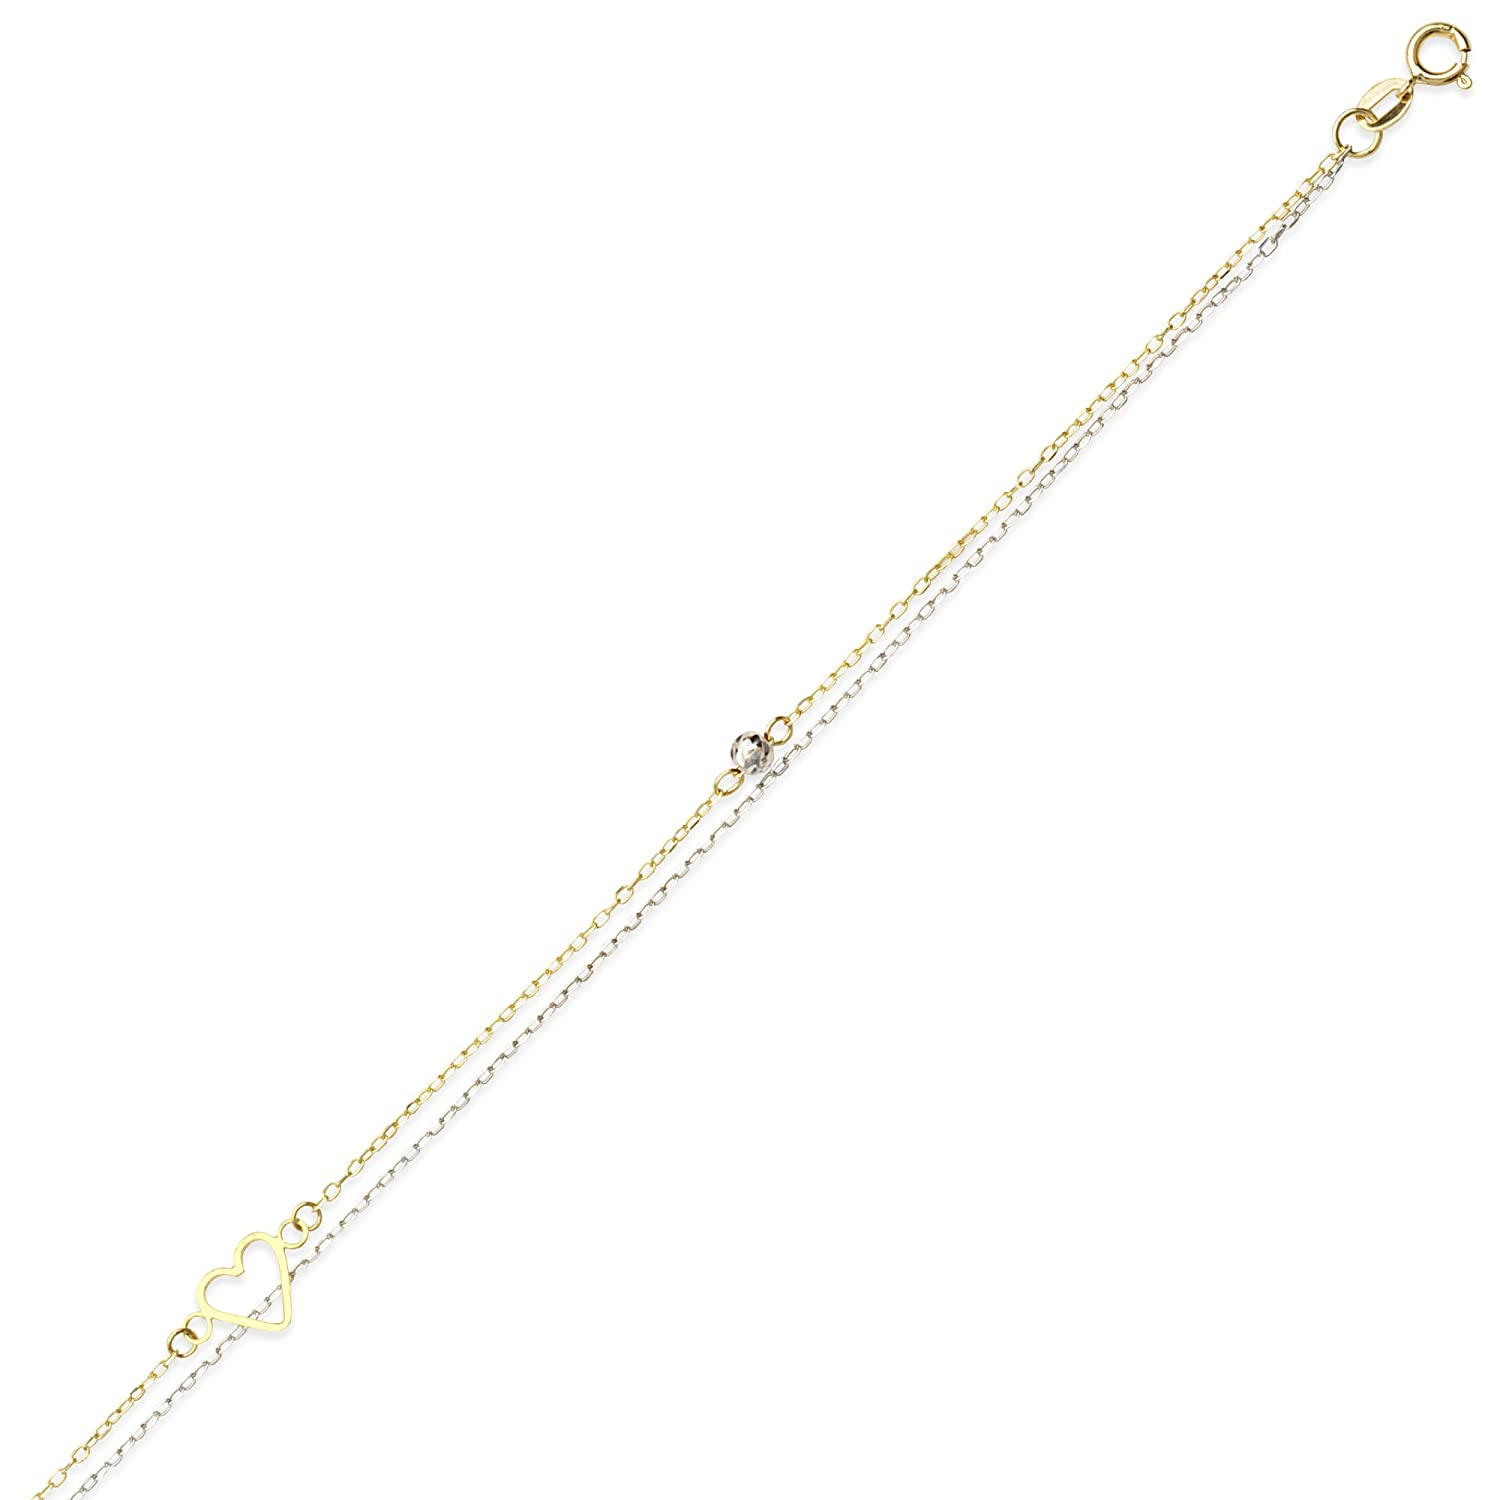 10 Inches 14Kt Gold Anklet Anklet